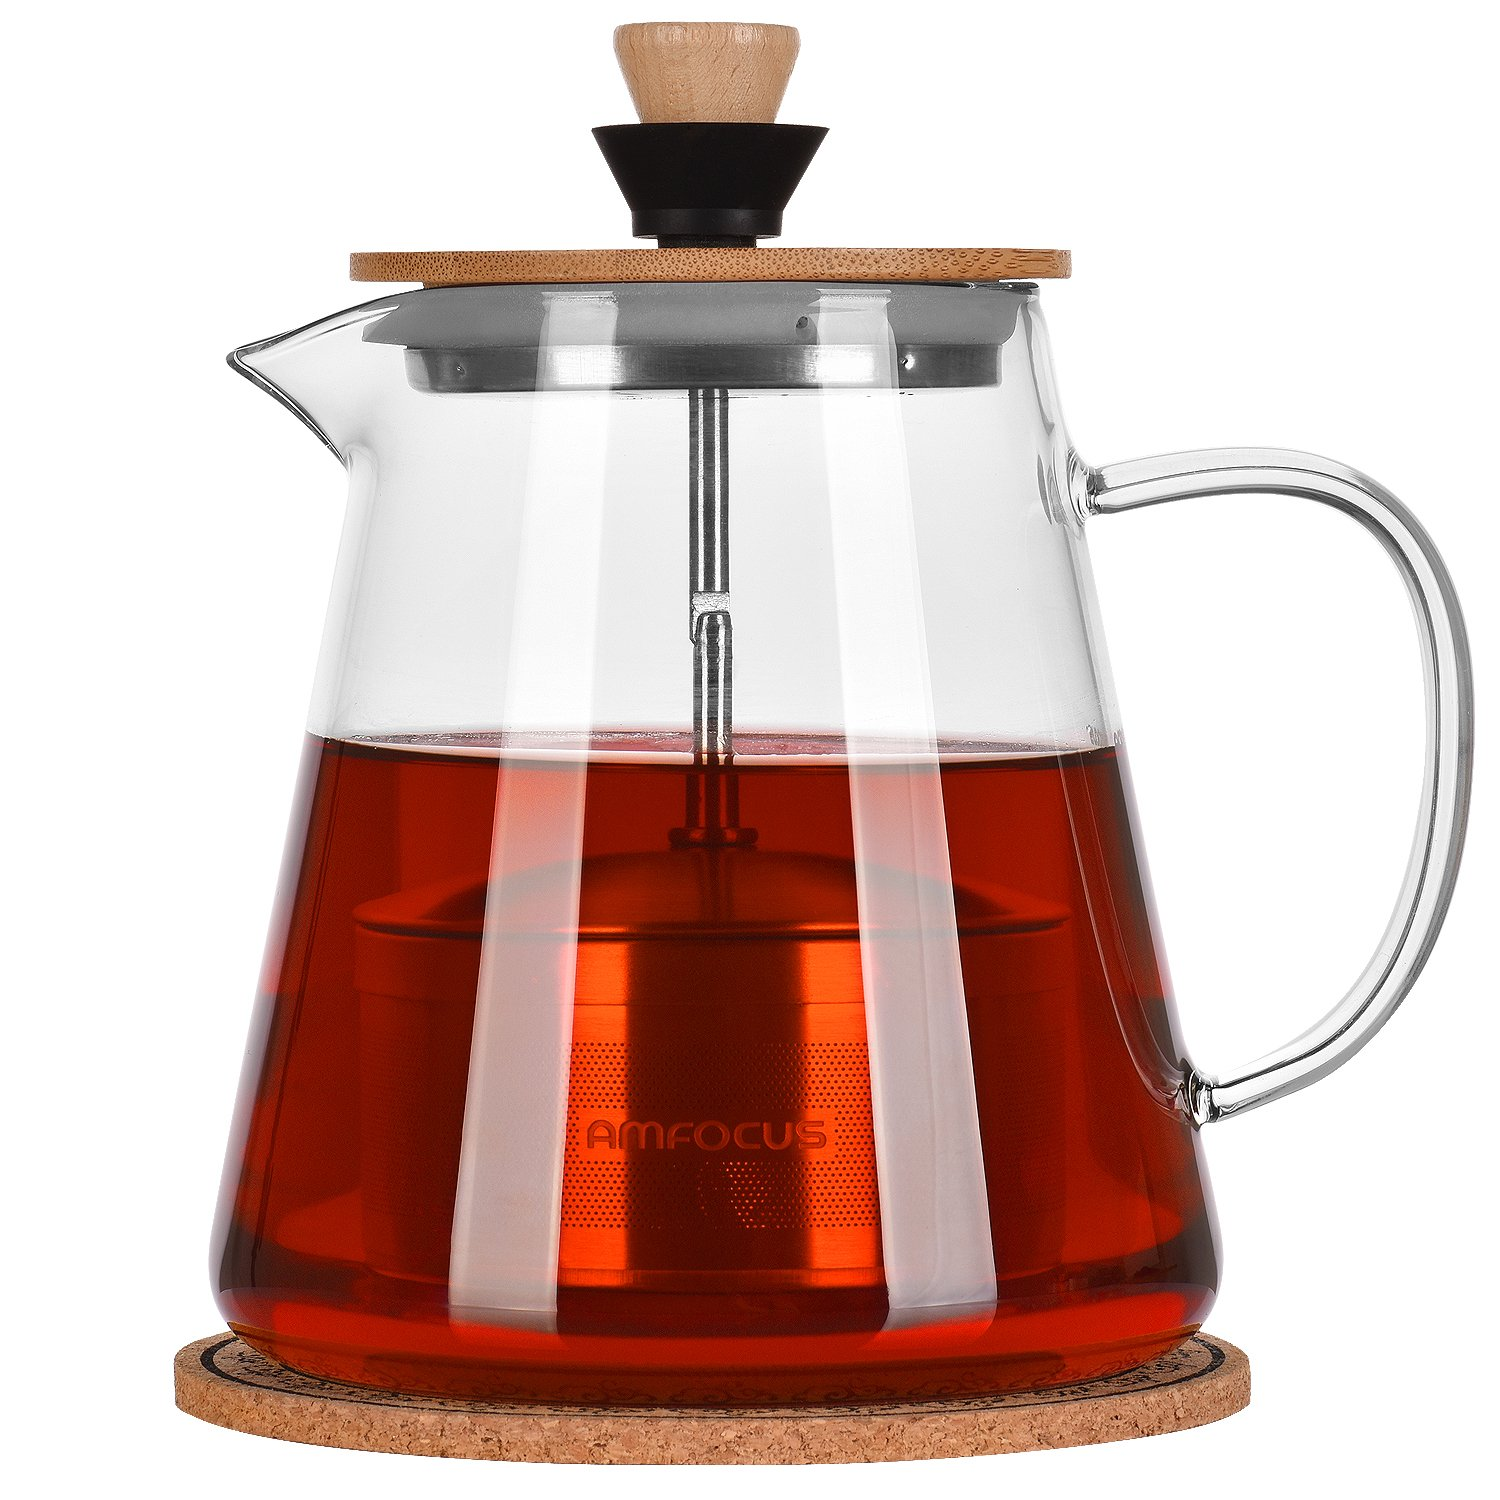 Glass Teapot with 18/10 Stainless Steel Tea Infuser,Blooming and Loose Leaf Teapots,Borosilicate Glass Tea Maker 32oz, Glass Tea Kettle Stove Top